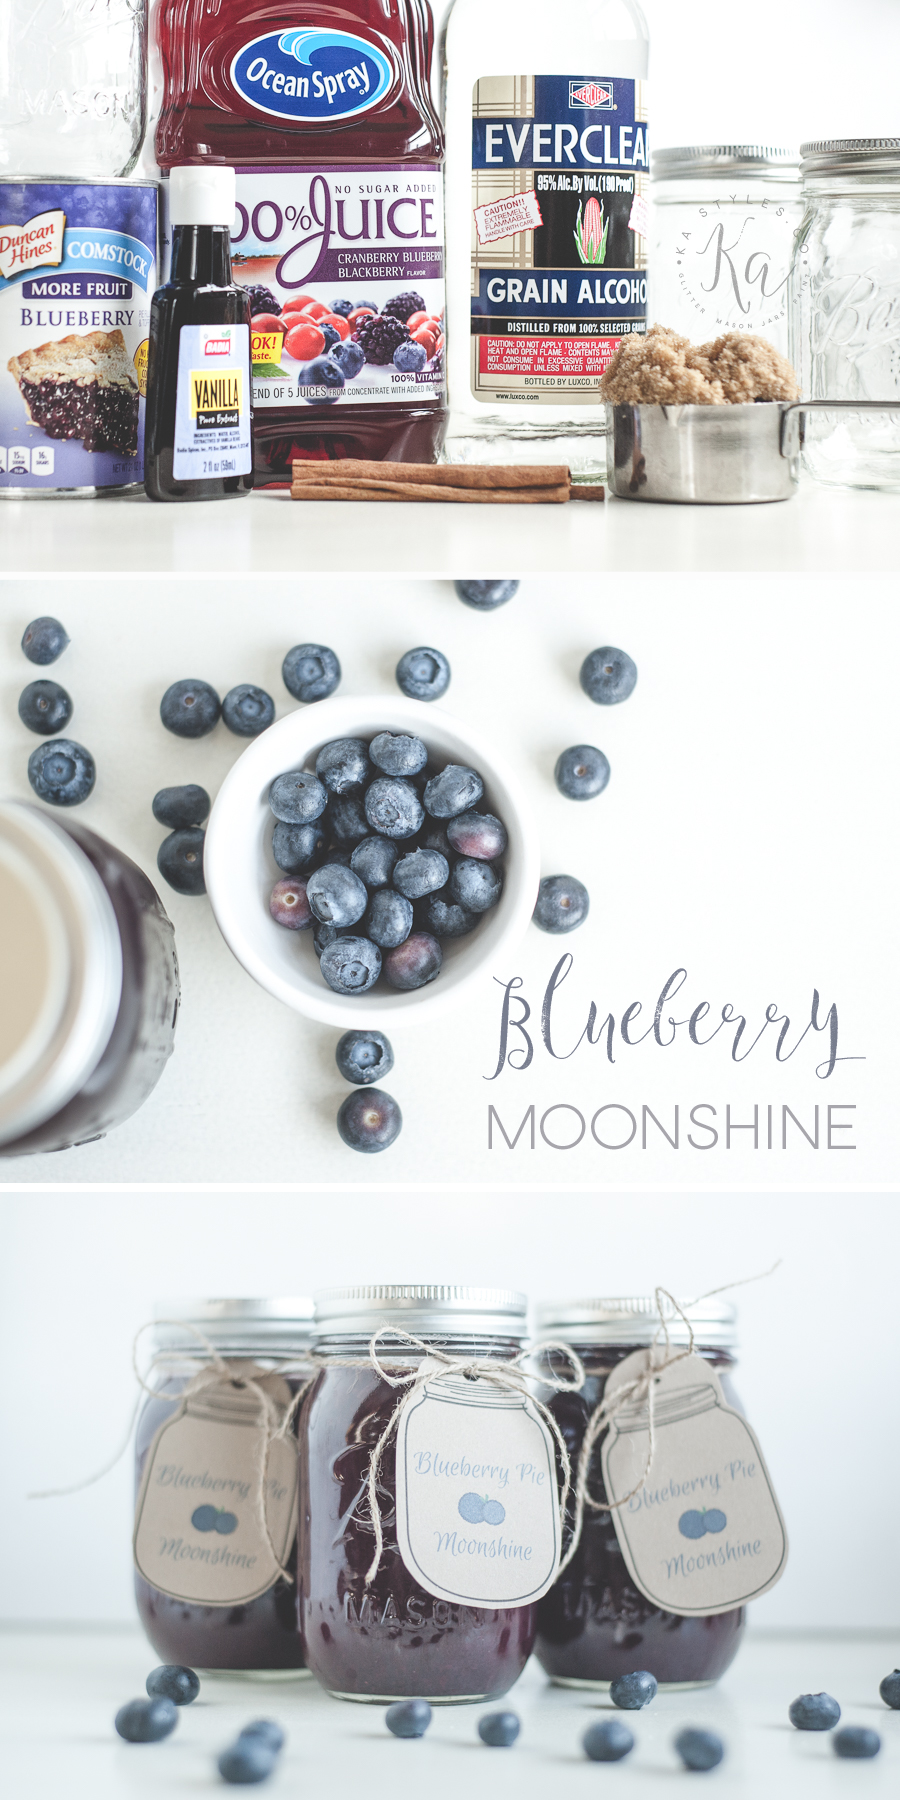 Blueberry Pie al a mode moonshine recipe with a free printable mason jar tag.